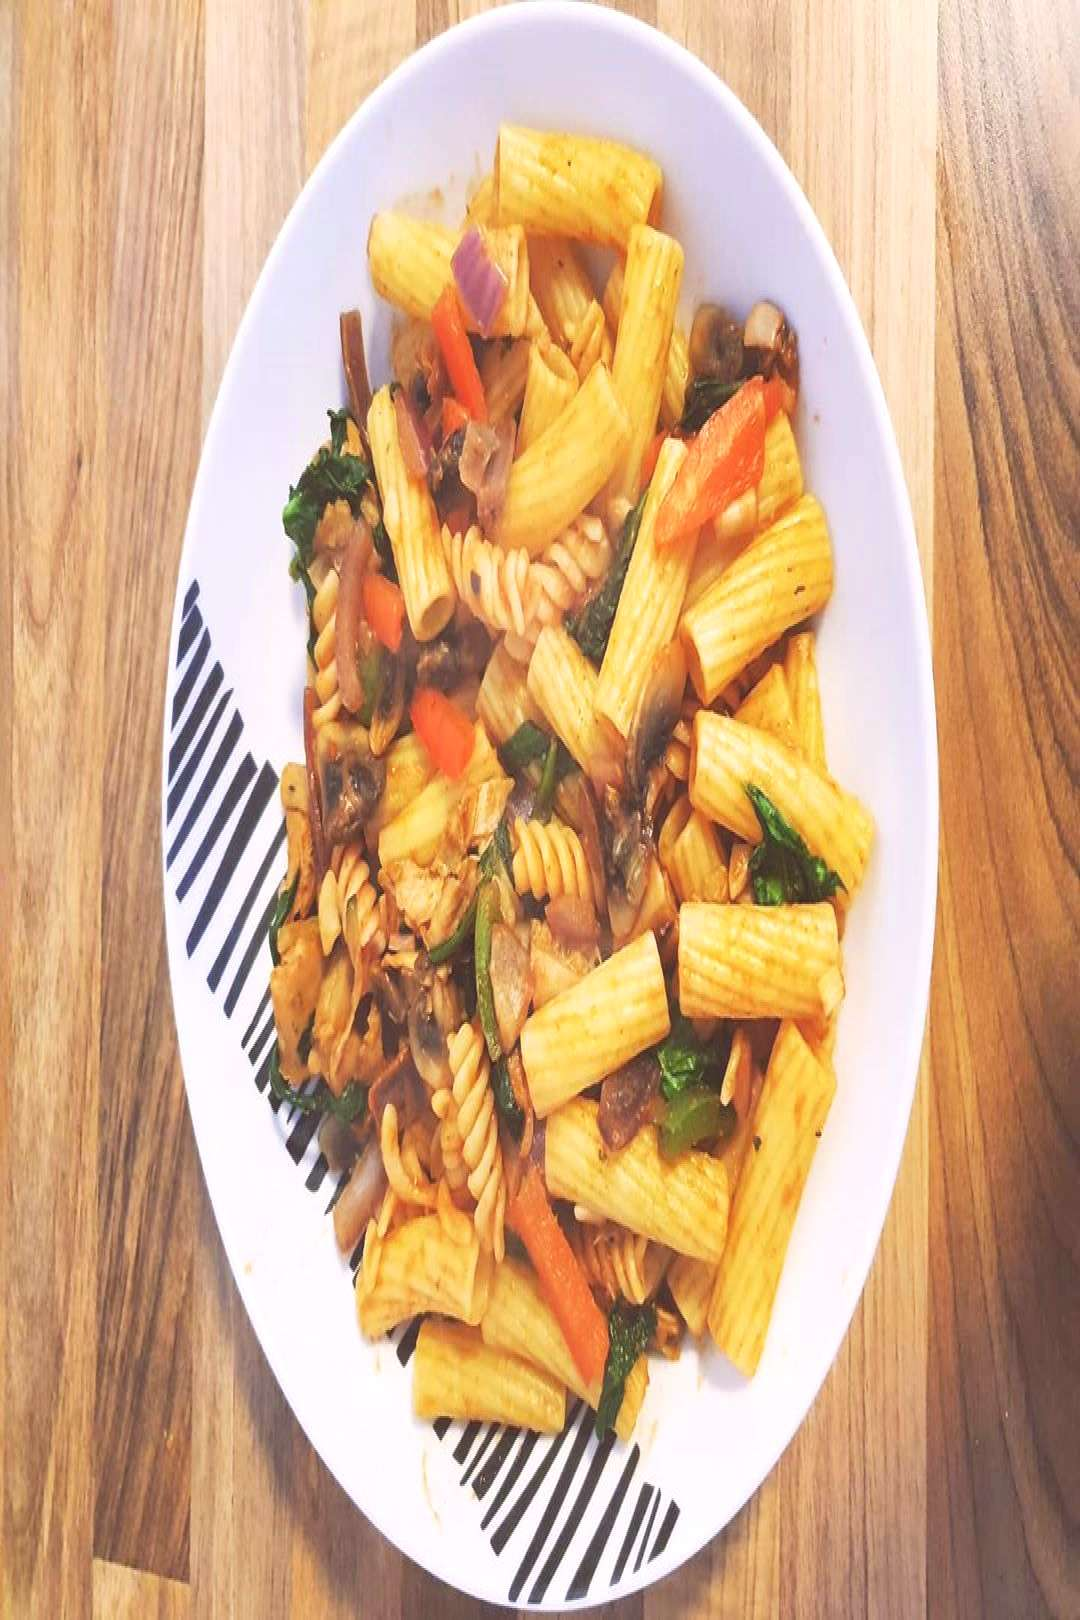 So pasta before work, filled with spinach, peppers mushrooms and